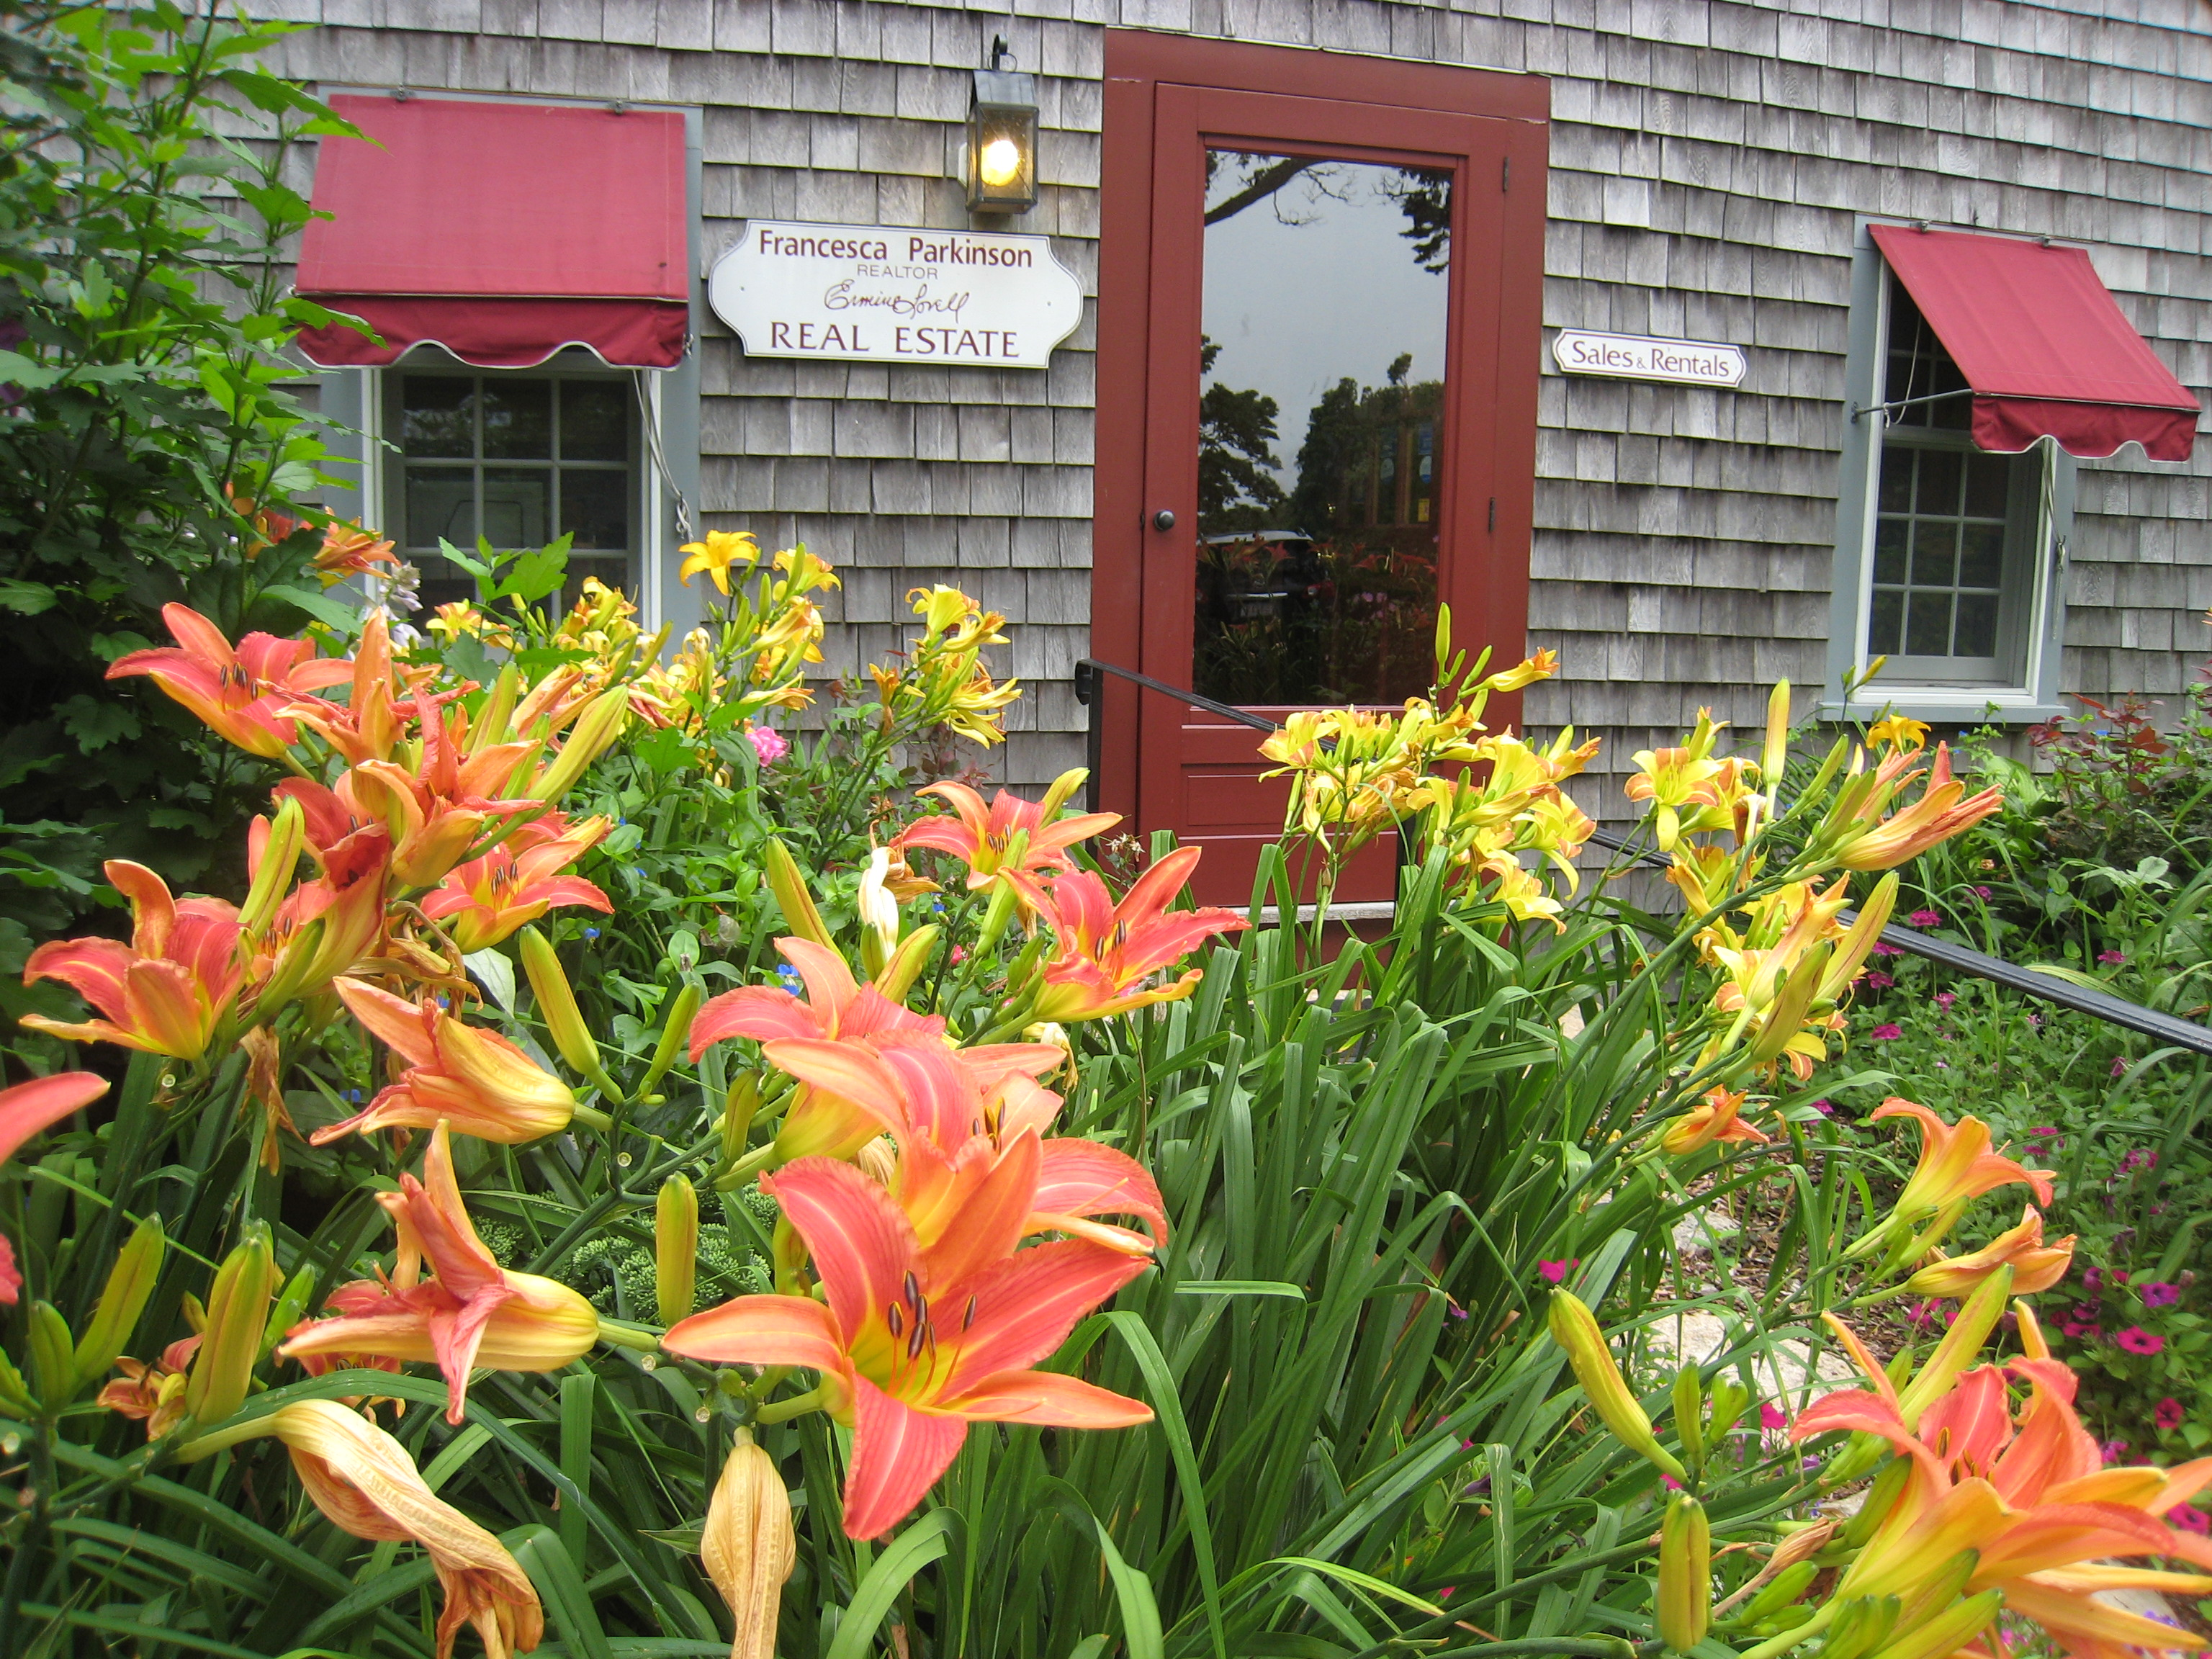 Ermine Lovell Real Estate Office in Falmouth MA